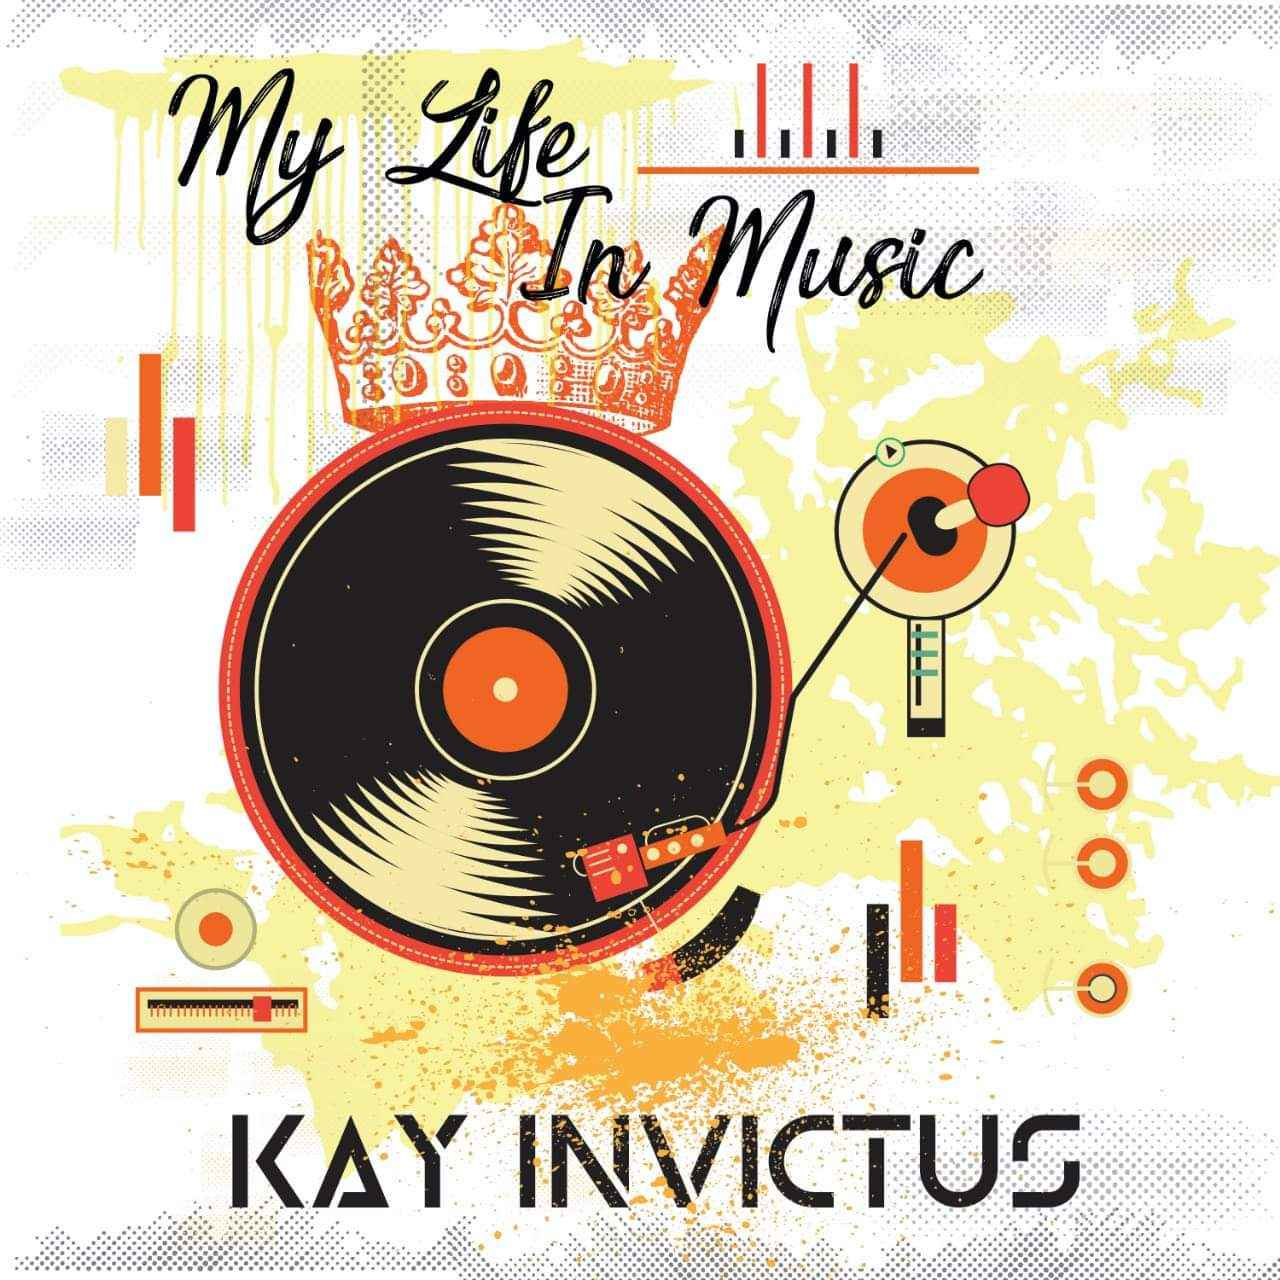 Kay Invictus My Life In Music Mix